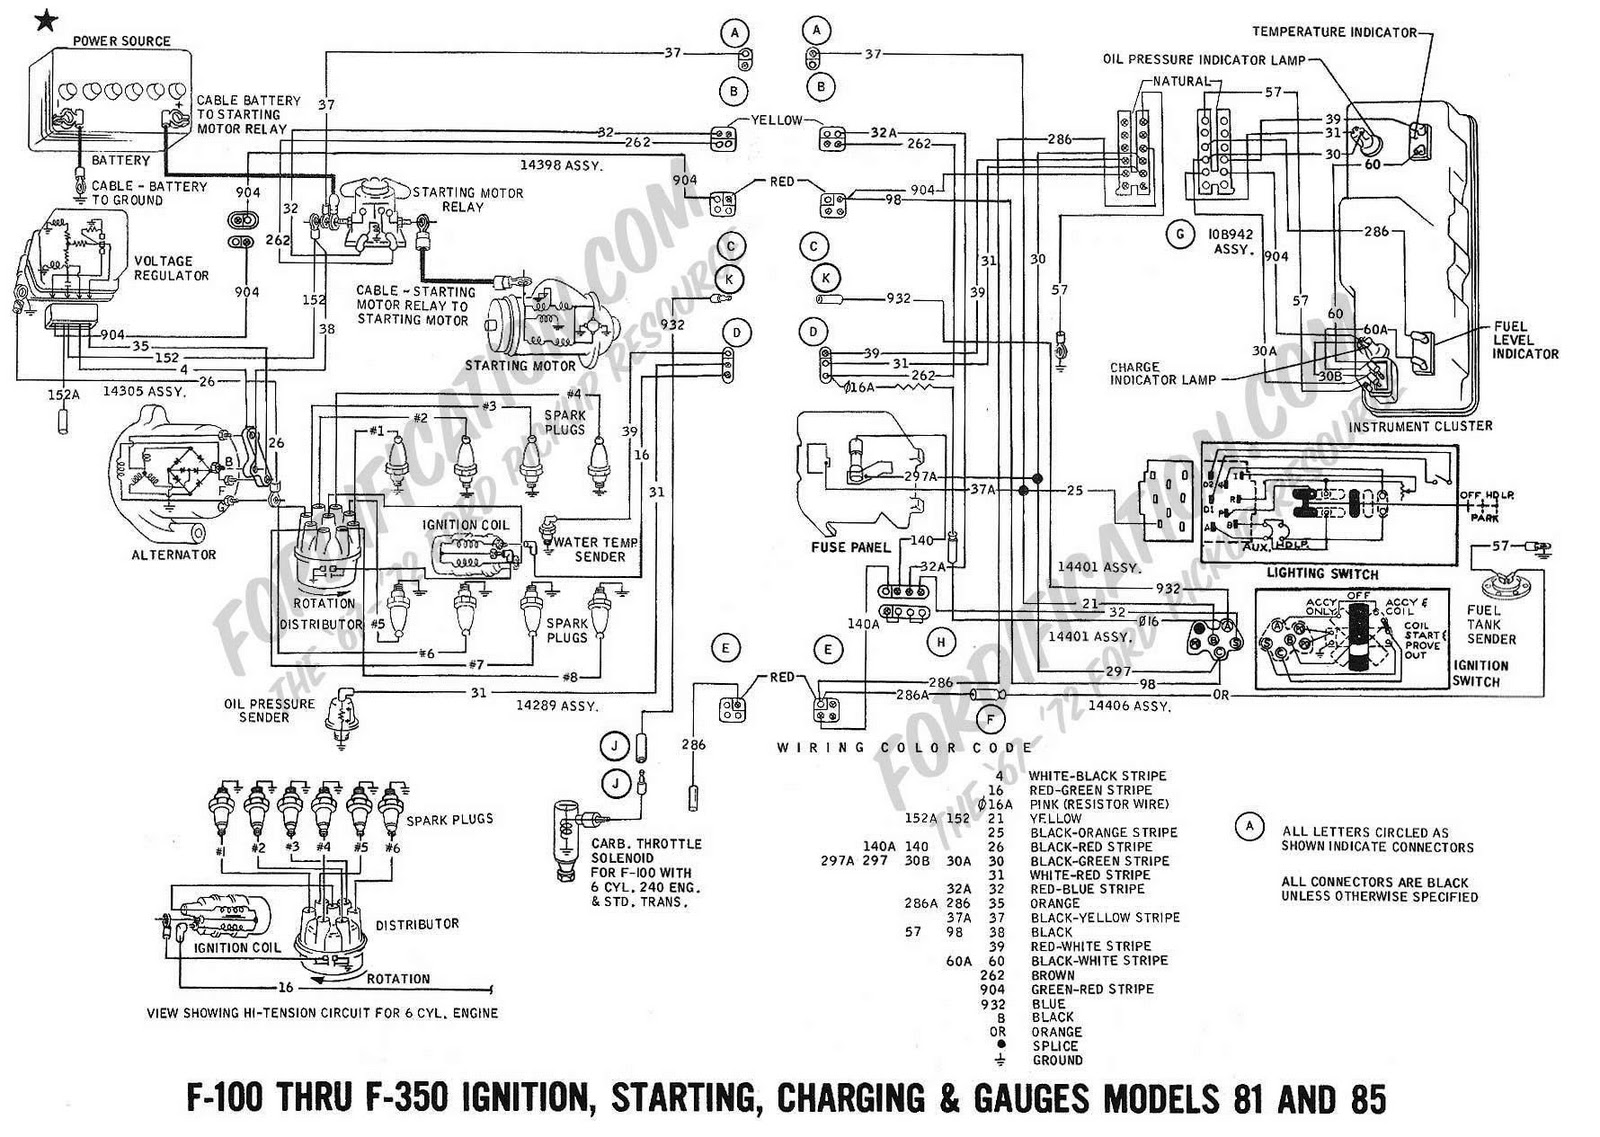 67 ford wiring harness wiring diagram Ford Pinto Ignition Wiring 67 ford wiring harness wiring diagrams1967 f 100 wiring harness wiring diagram detailed